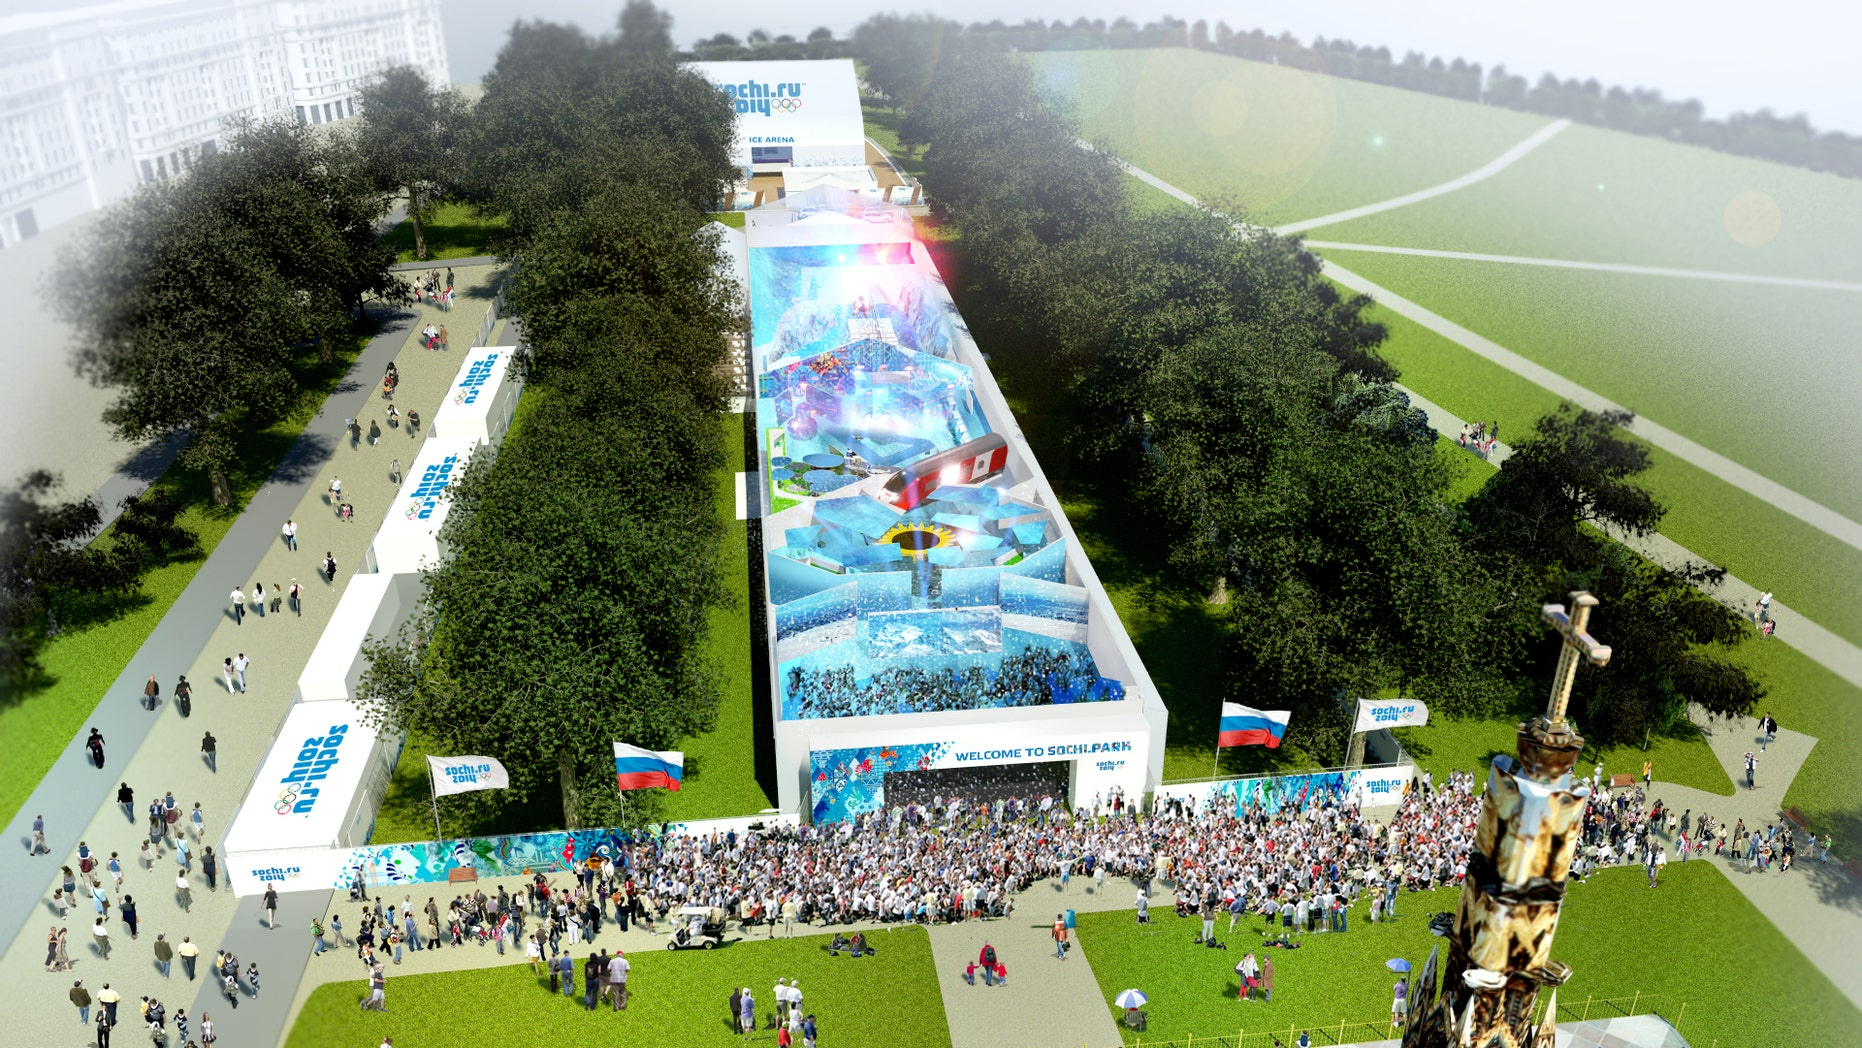 June 21, 2012: This is a computer generated image made available  by Eventica/Sochi 2014 Organizing Committee.